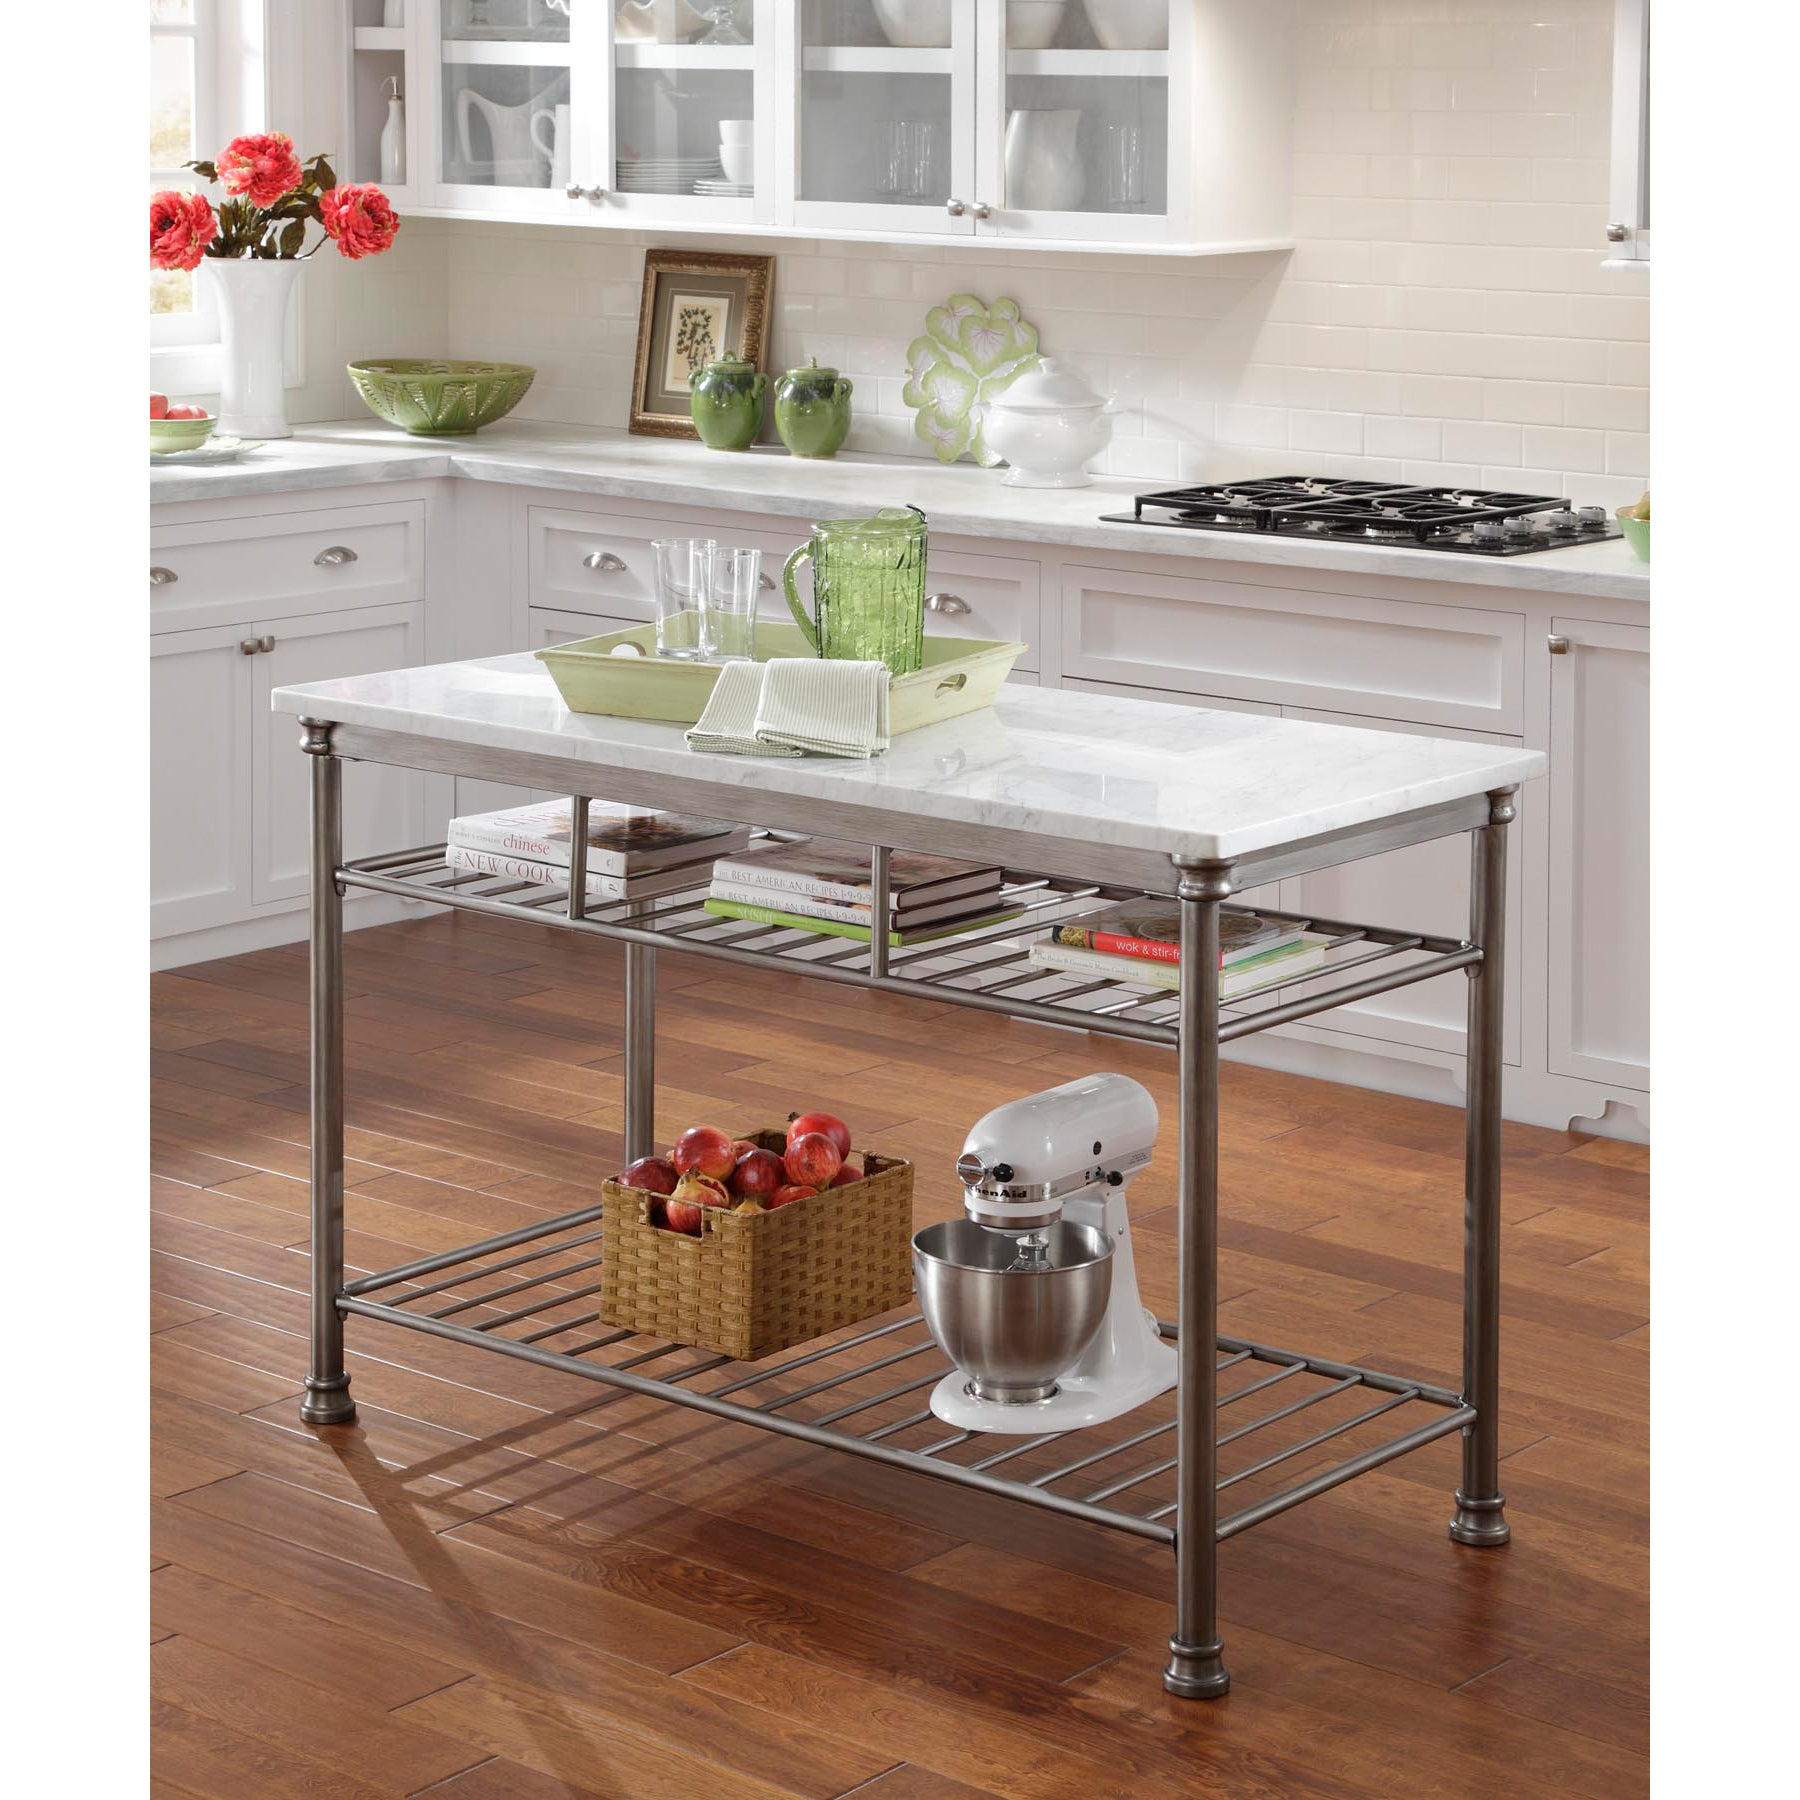 Shop maison rouge abrams kitchen island with marble top free shipping today overstock com 20127440